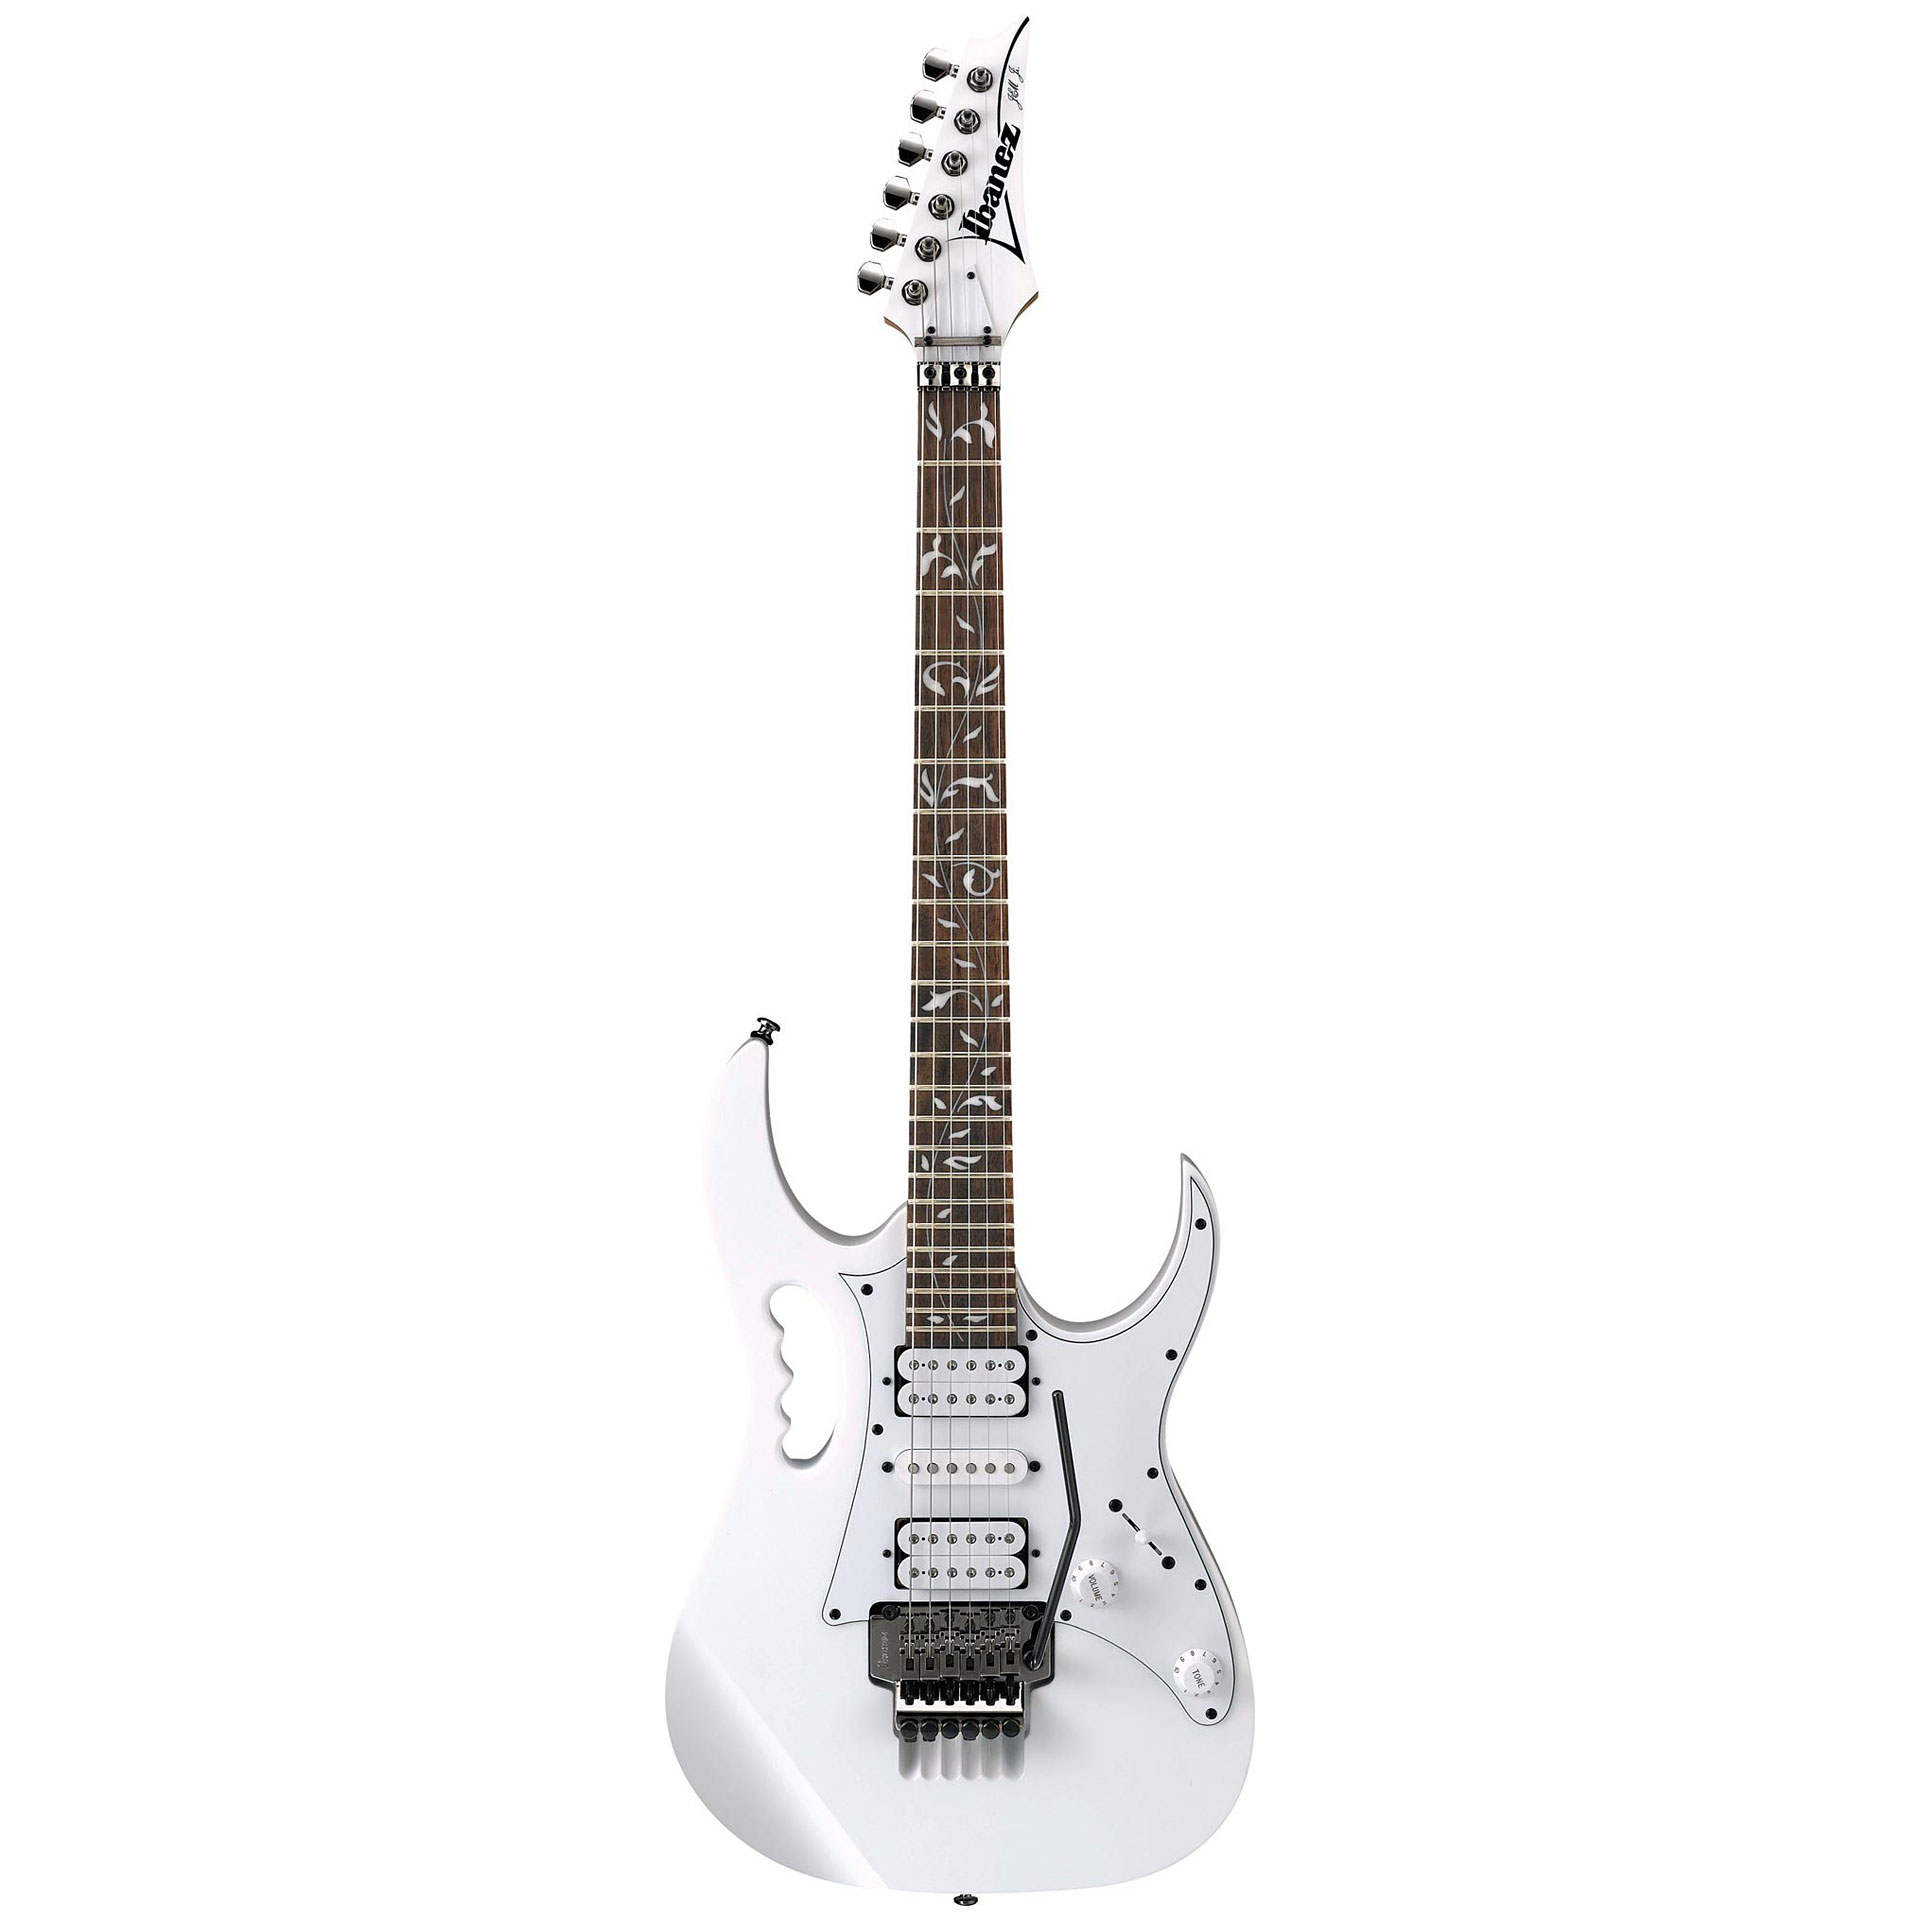 Generous Bass Pickup Configurations Tiny Dimarzio Pickup Wiring Flat Electric Guitar Wire Dimarzio Wiring Colors Young Guitar Tone Wiring BrownIbanez Humbuckers Ibanez Signature JEMJR WH Steve Vai « Electric Guitar